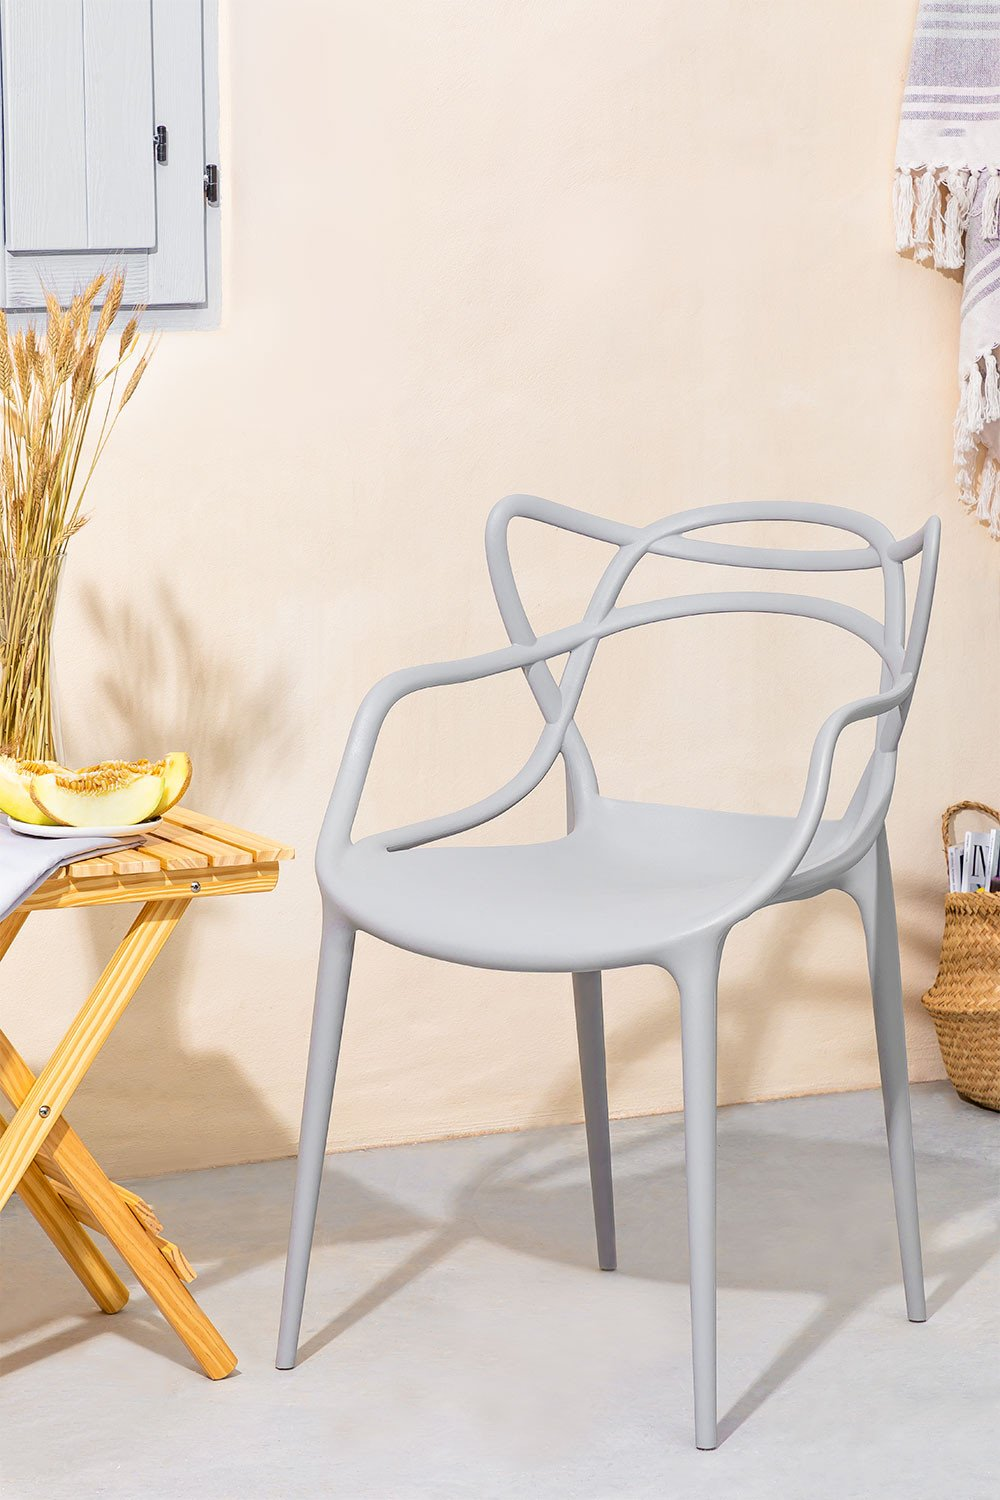 Coquelicot Chair, gallery image 1